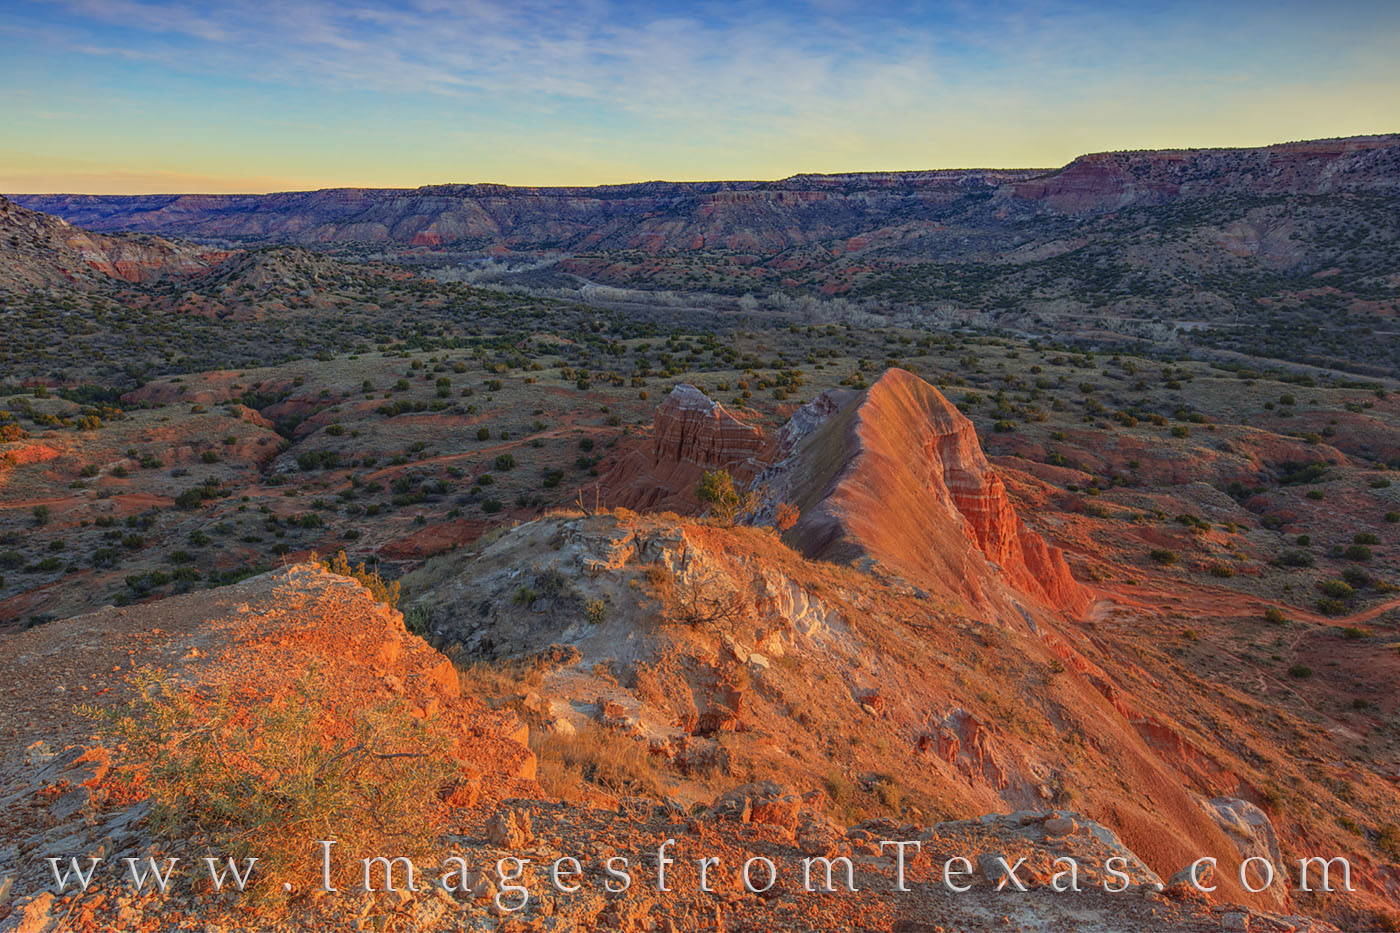 palo duro canyon, capitol peak, capitol peak summit, sunrise, hiking, climbing, state park, november, panhandle, photo